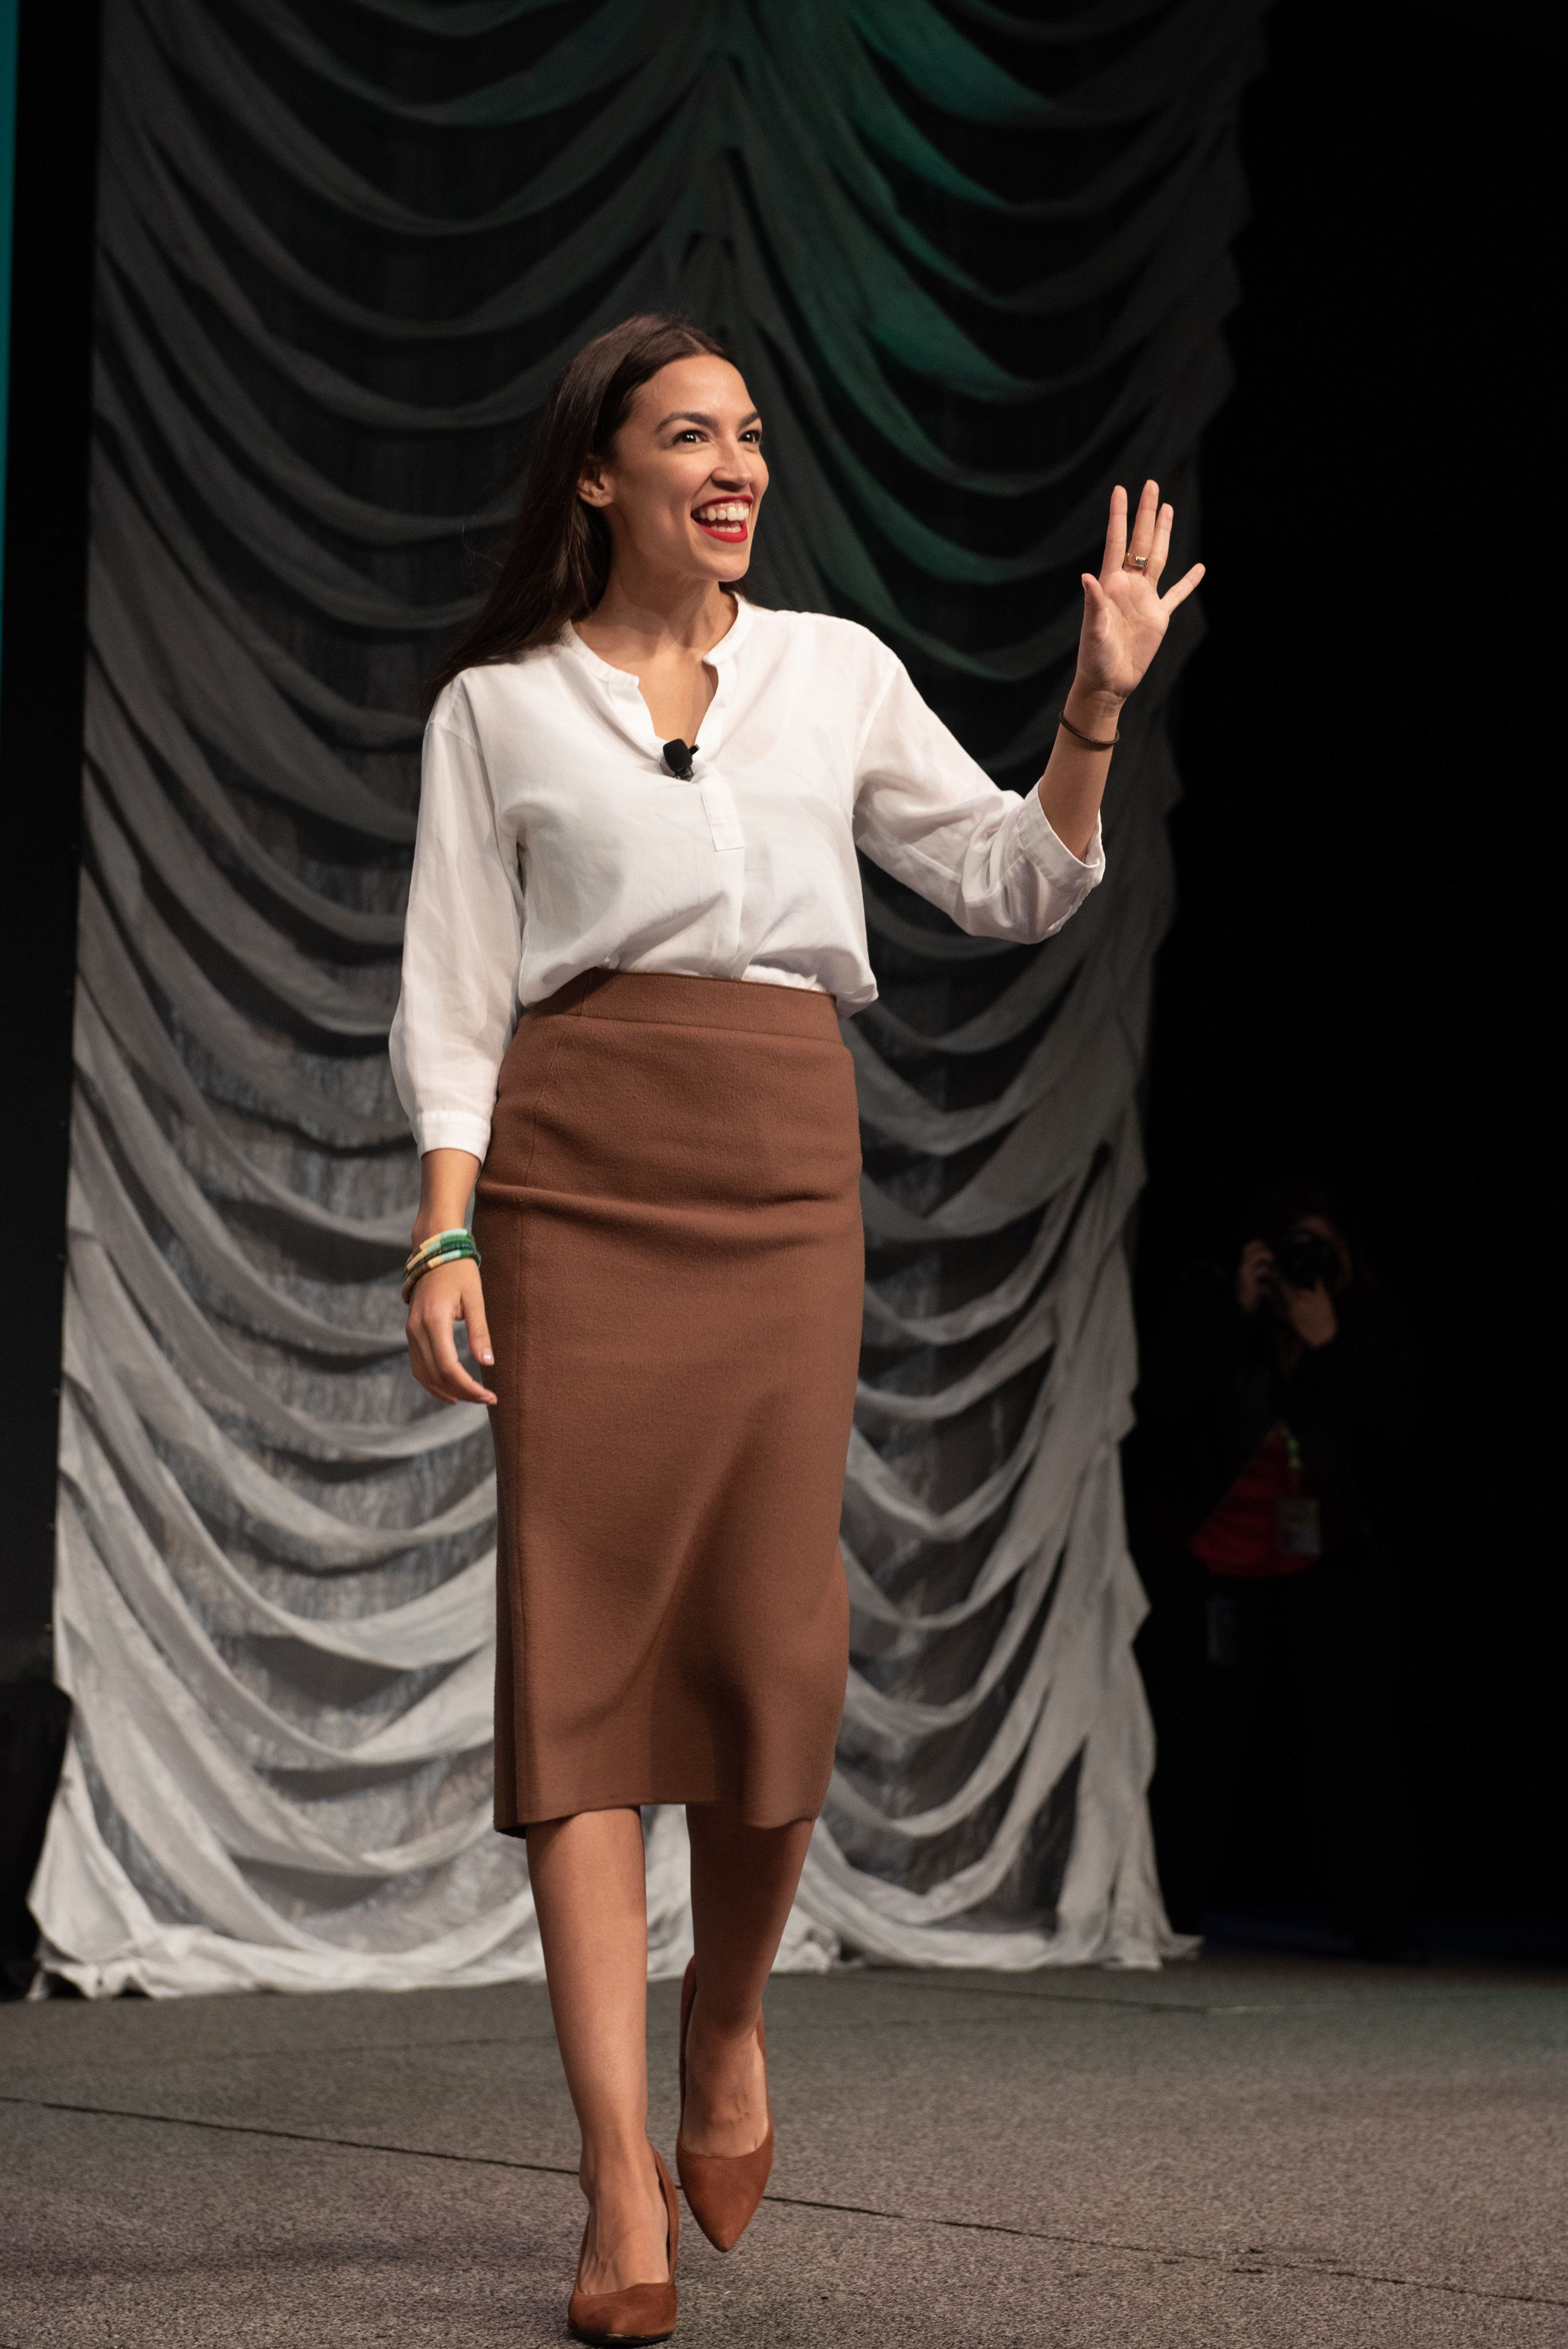 AUSTIN, TEXAS - MARCH 09: Alexandria Ocasio-Cortez walks onto the stage during the 2019 SXSW Conference and Festival at the Austin Convention Center on March 09, 2019 in Austin, Texas. (Photo by Jim Bennett/WireImage)